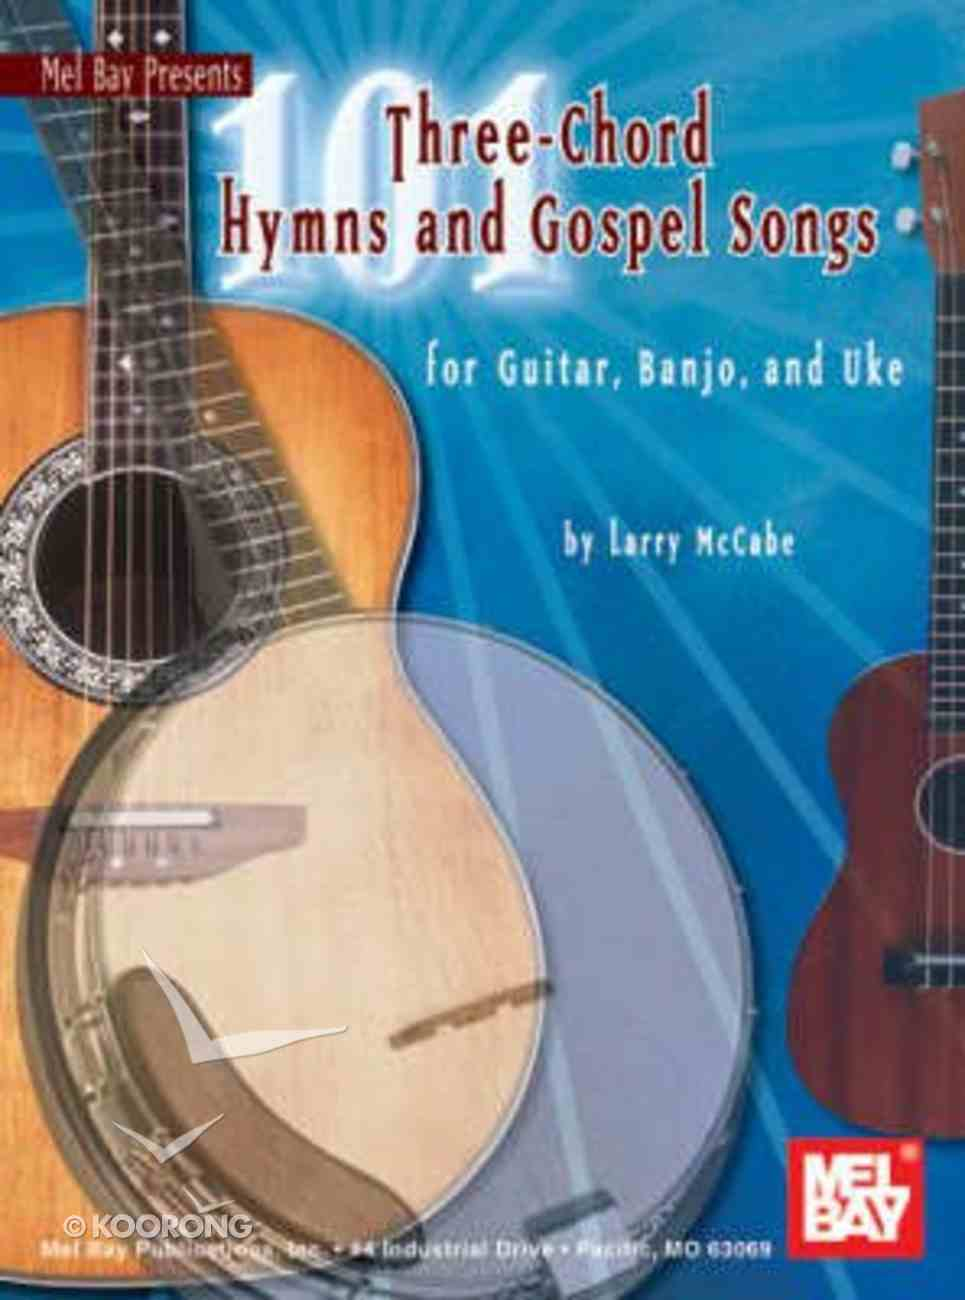 101 Three-Chord Hymns and Gospel Songs (Music Book) Paperback